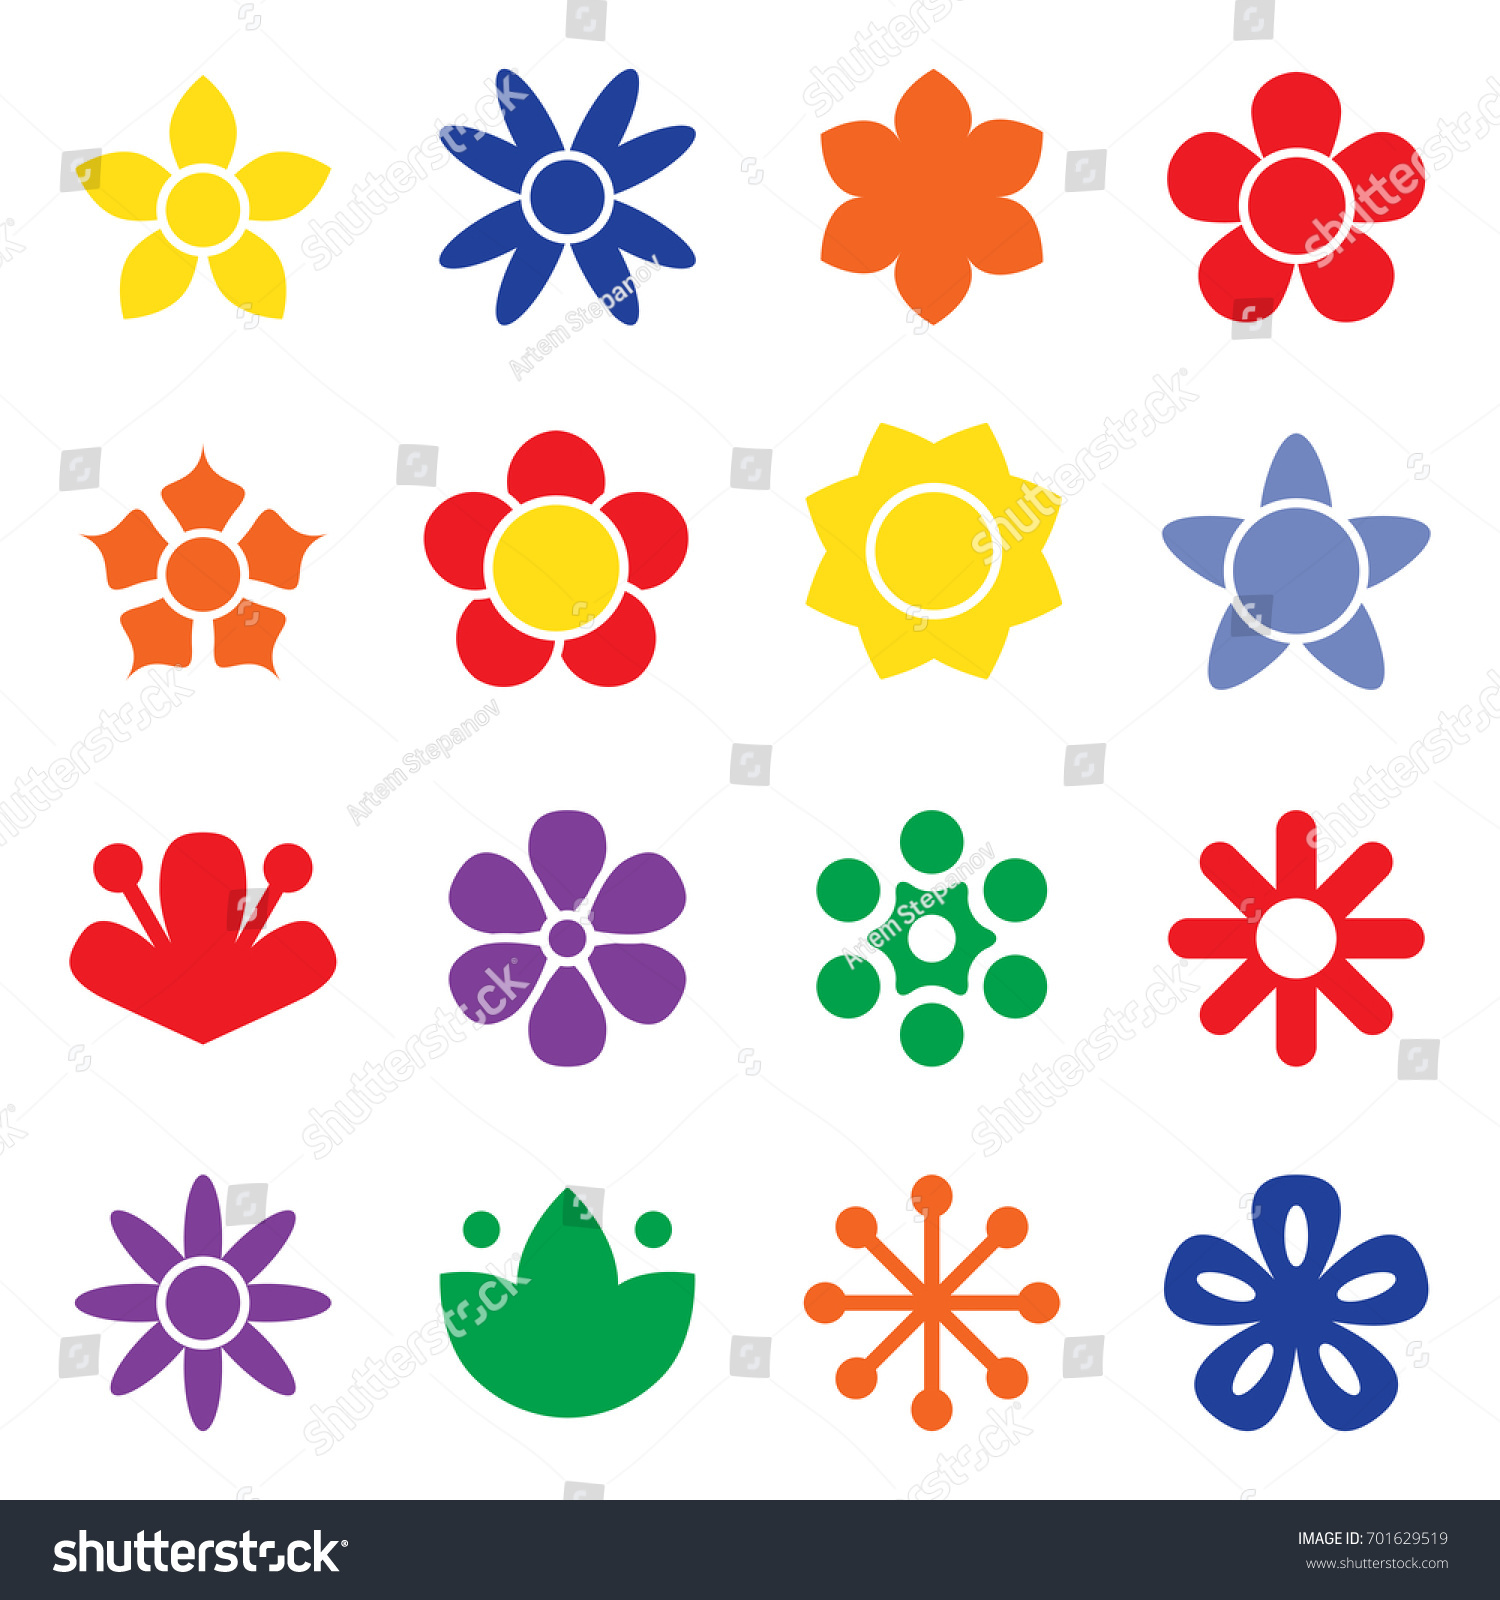 Flower icon collection flat style daisy stock vector 701629519 flower icon collection in flat style daisy symbol or logo template pictogram biocorpaavc Choice Image